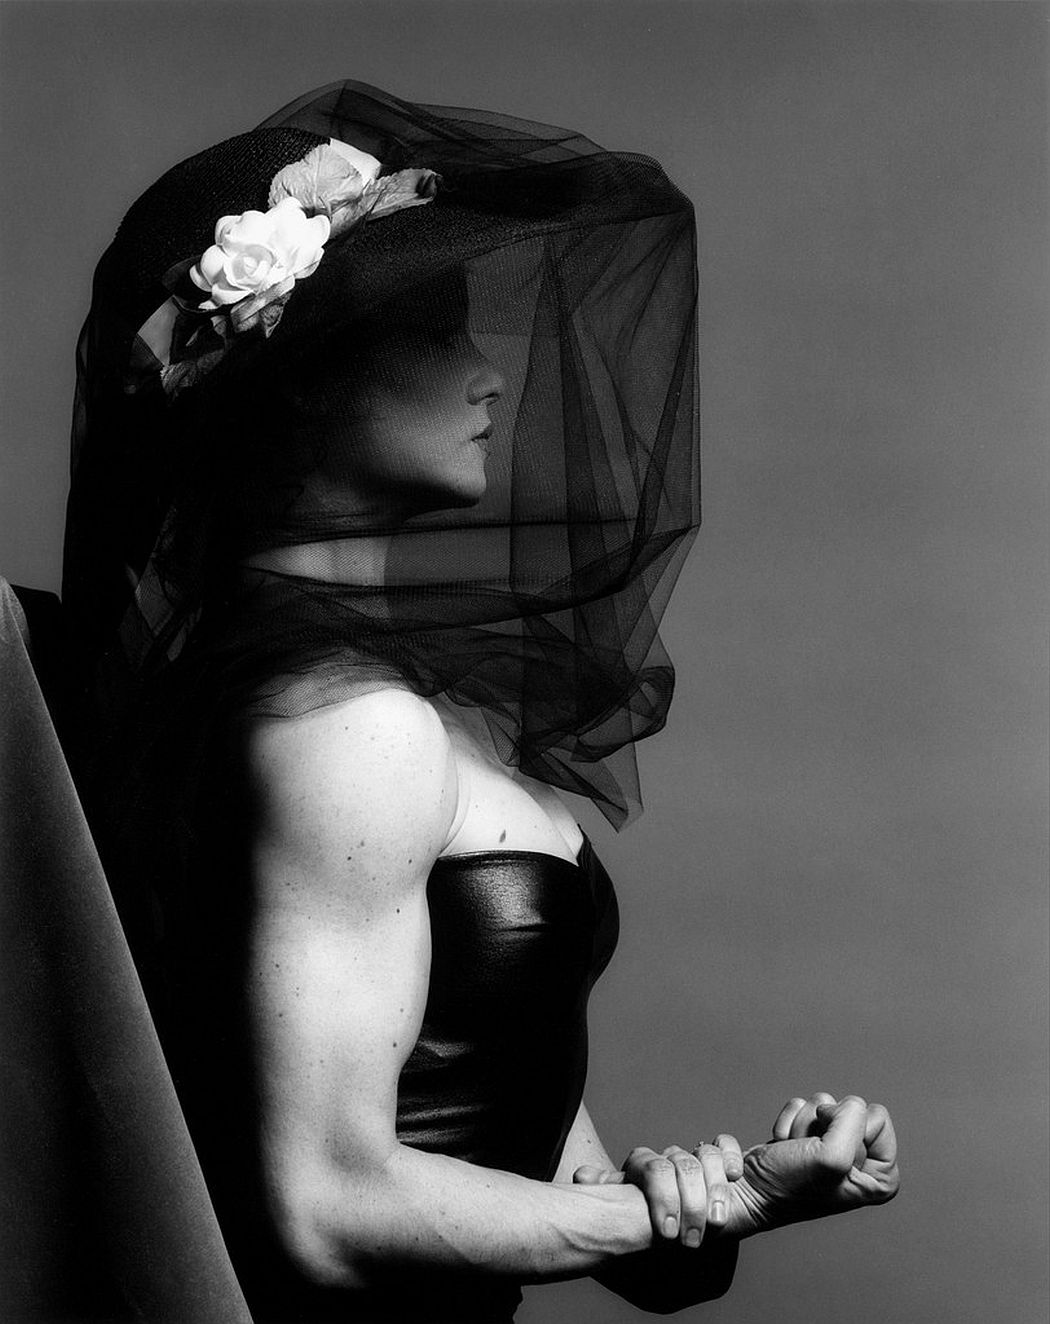 robert-mapplethorpe-on-the-edge-07